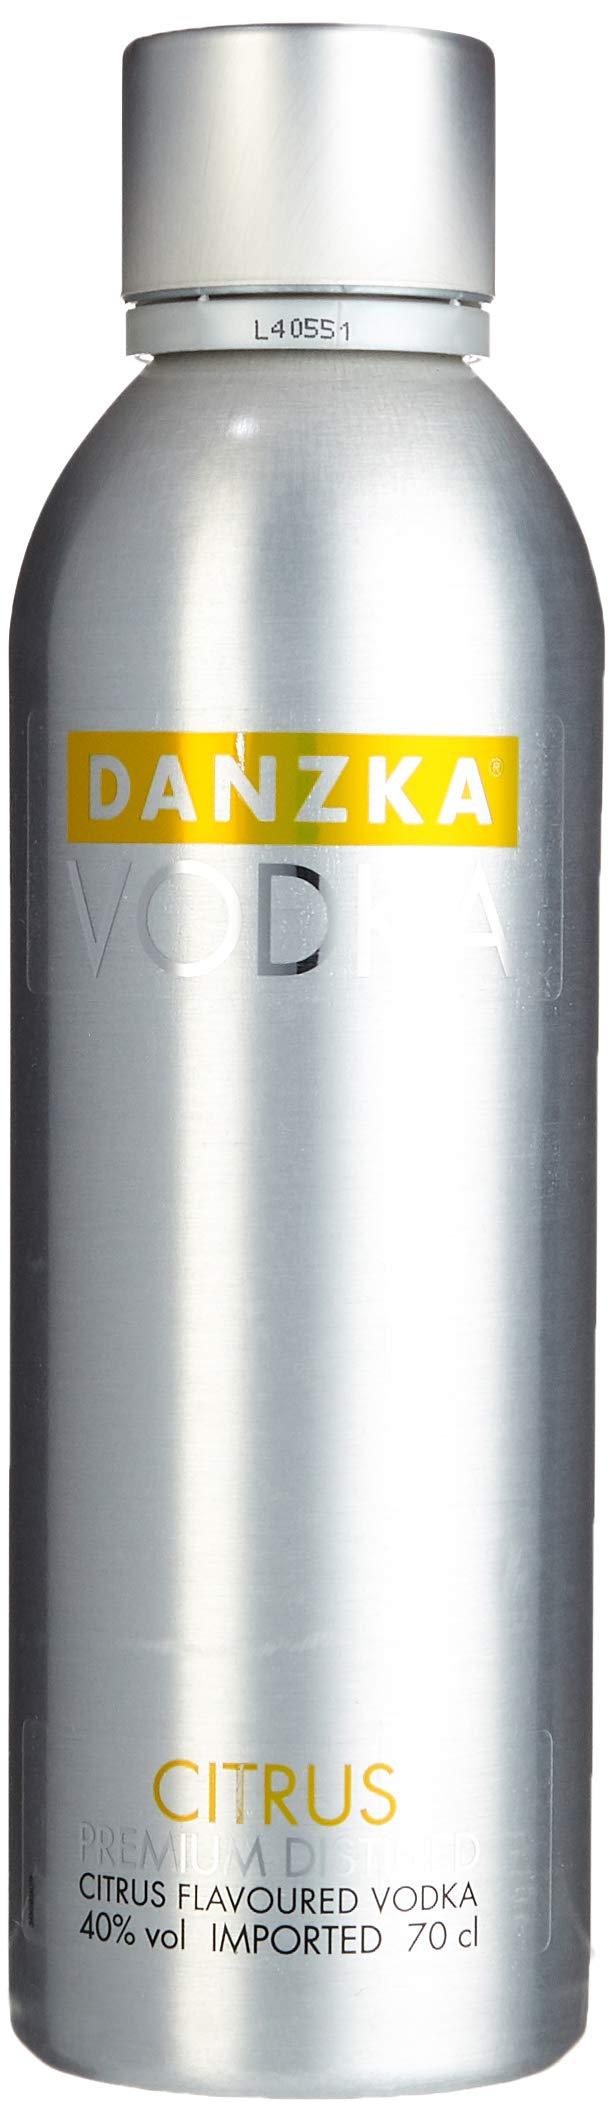 Danzka-Citrus-Vodka-1-x-07-l